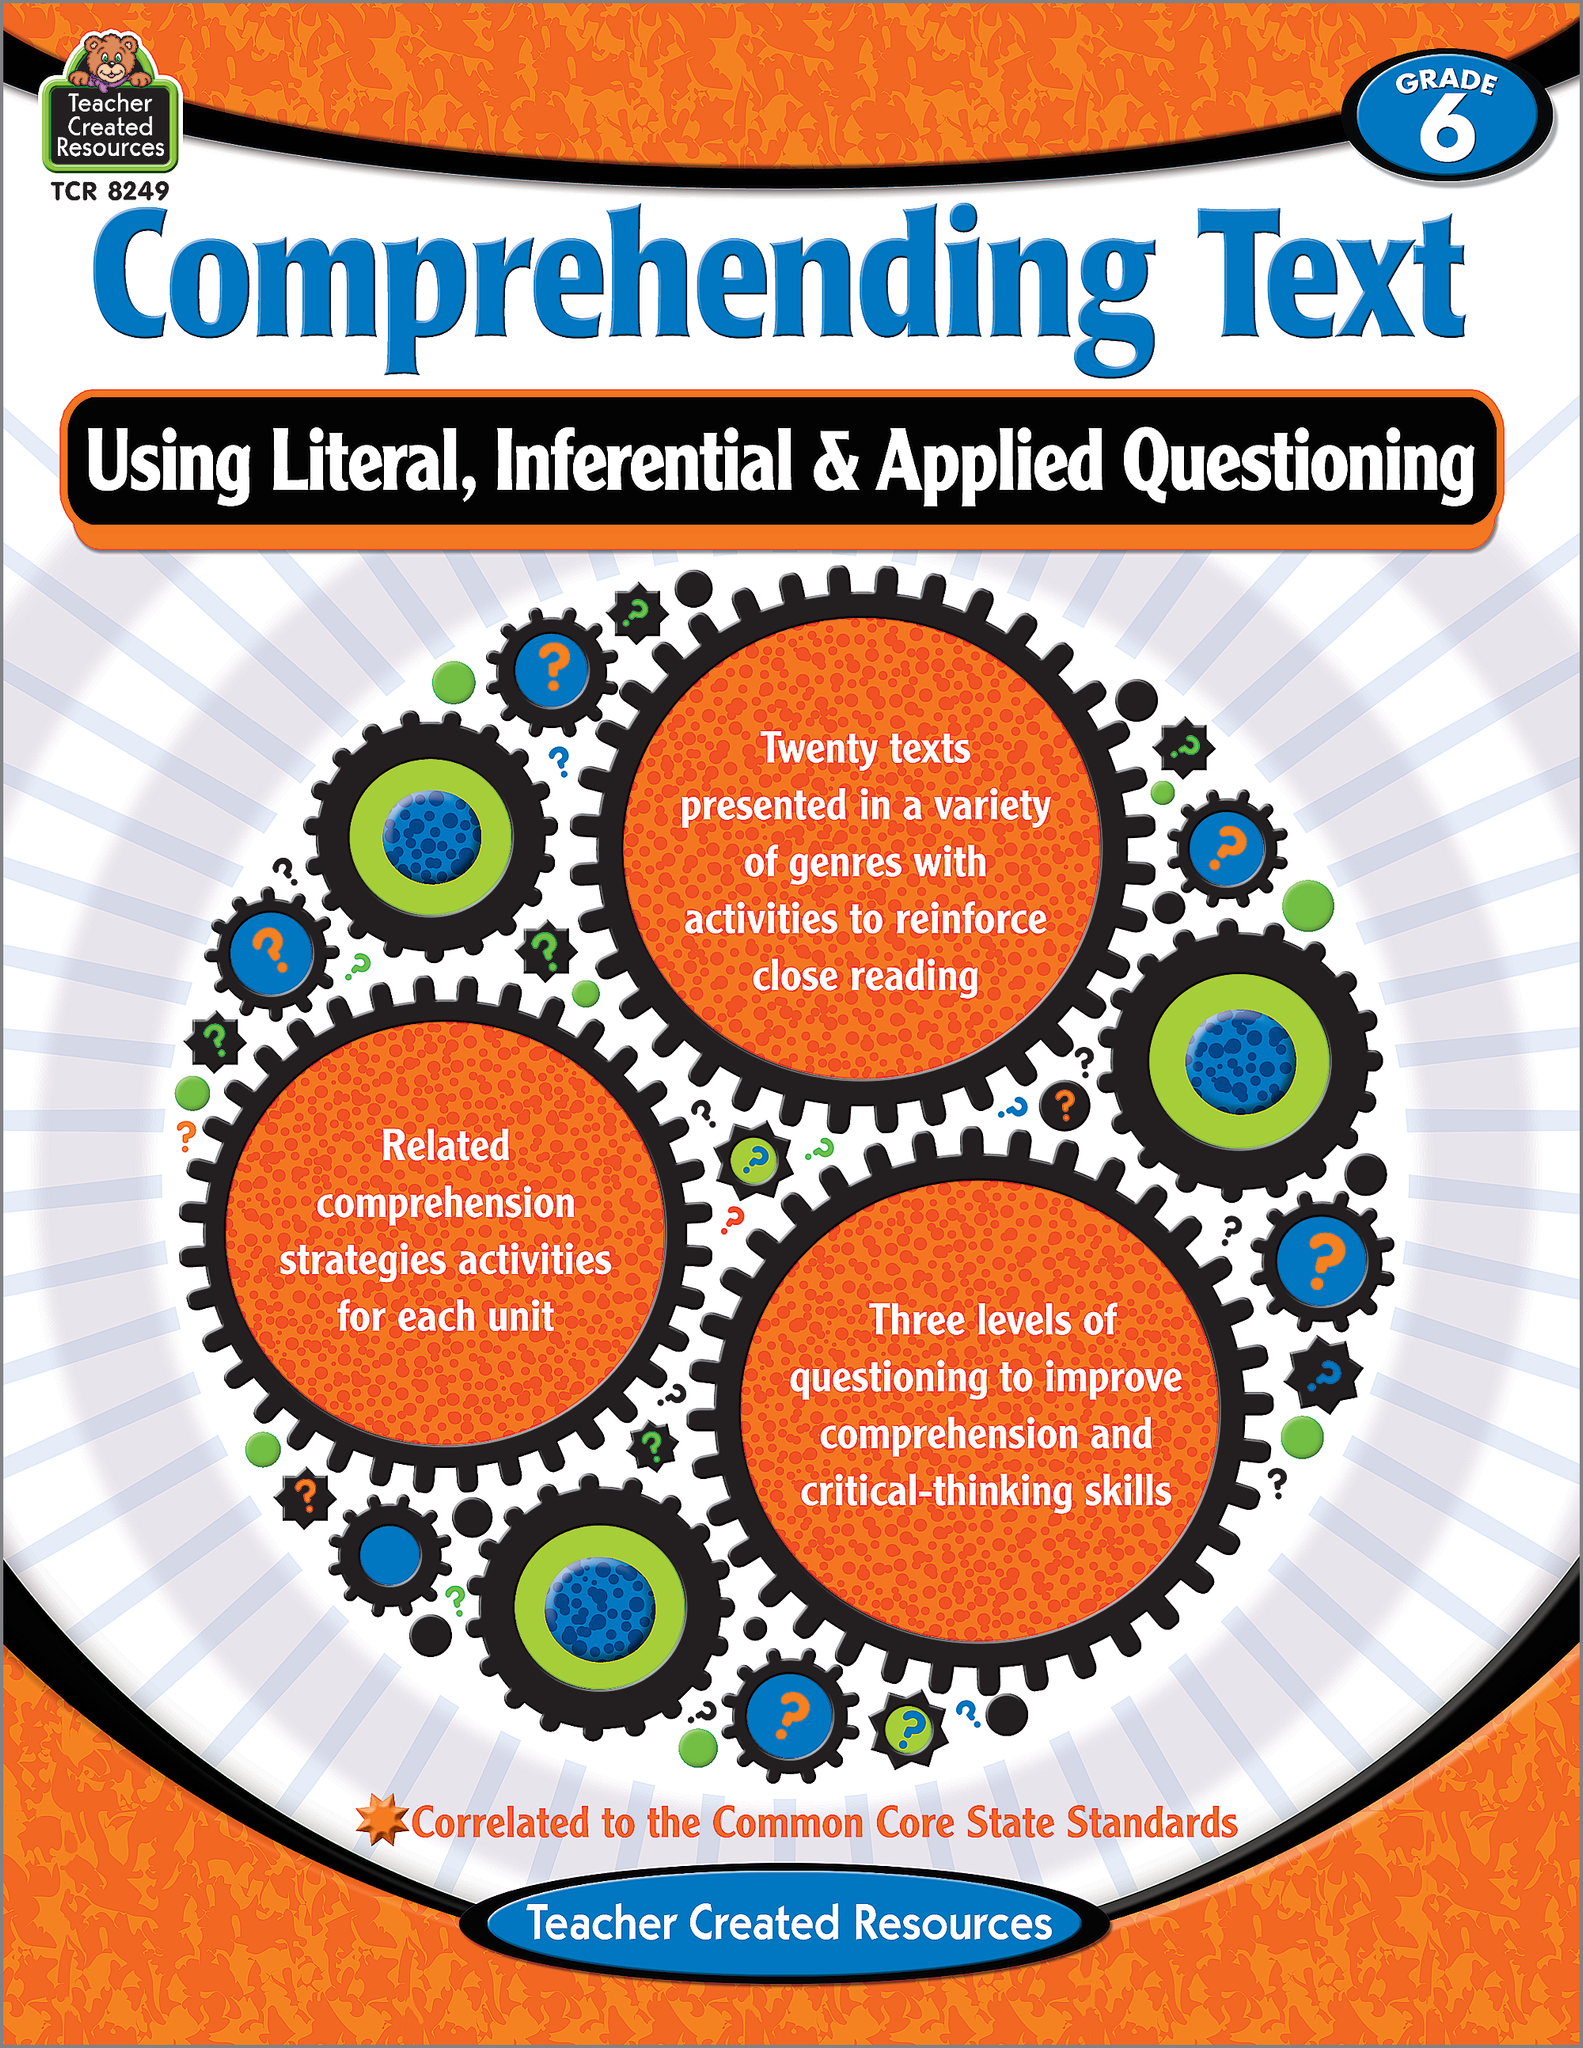 Comprehending Text Using Literal, Inferential & Applied Questioning (Gr. 6)